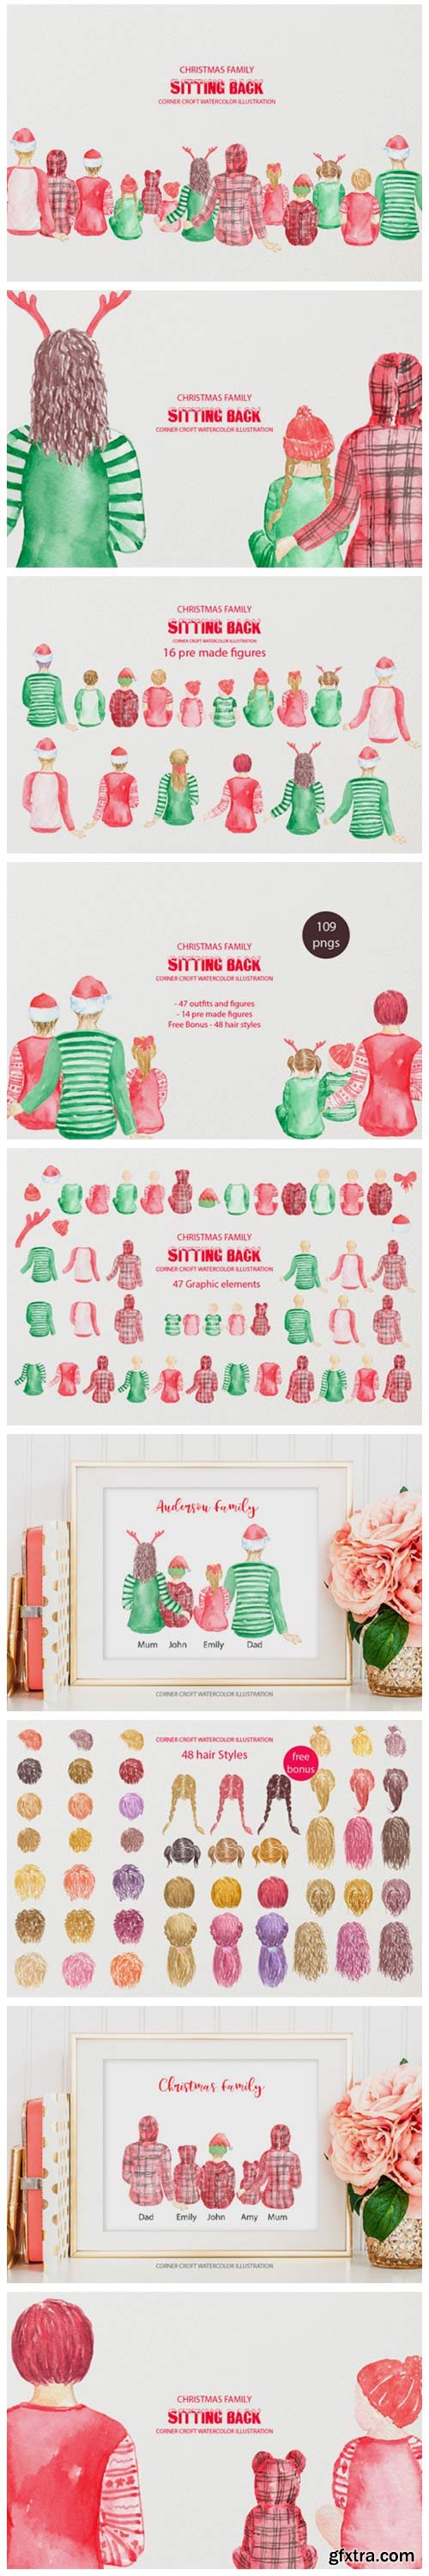 Watercolor Illustration Christmas Family 2643120